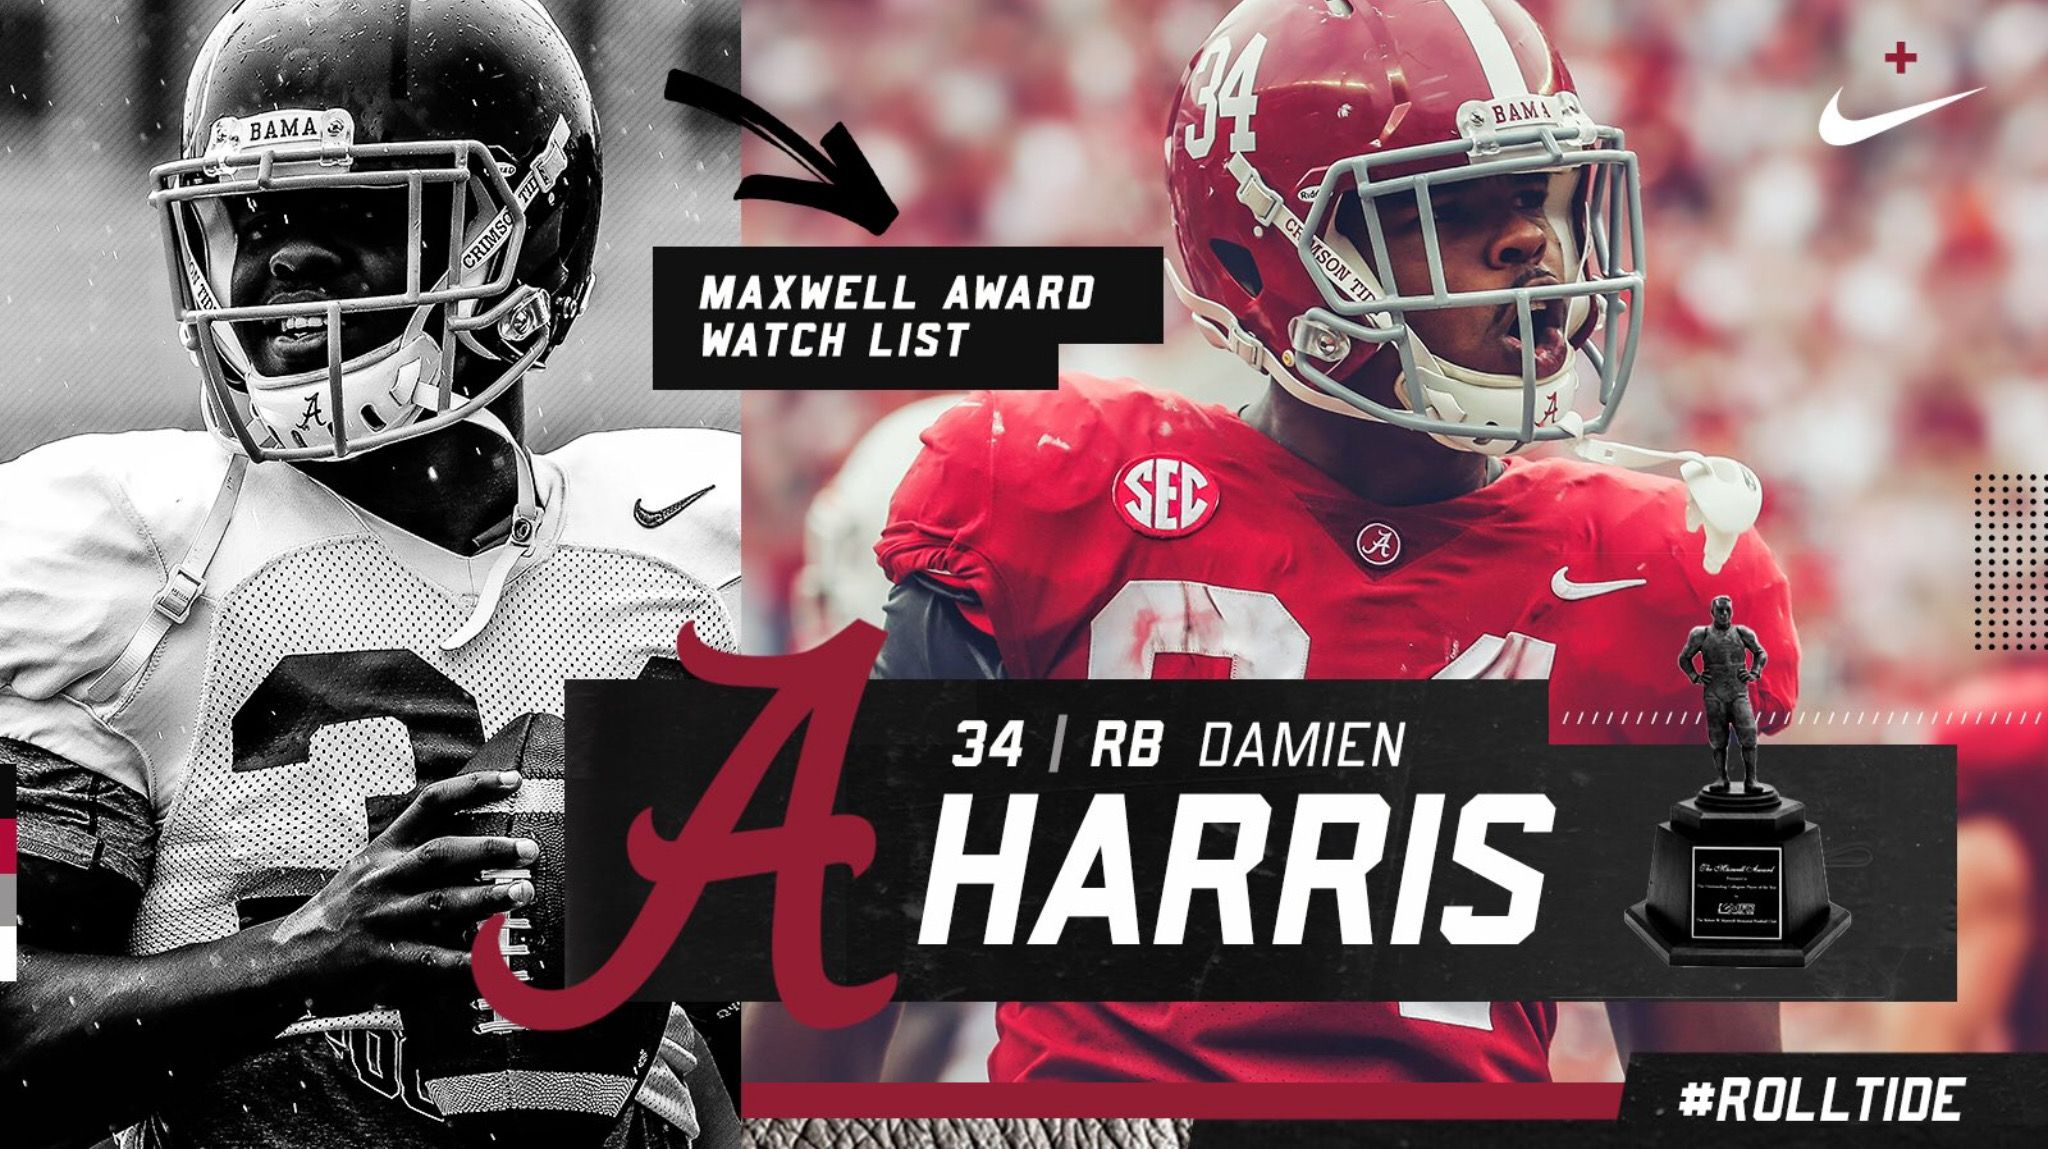 Damien Harris Maxwell Award Watch List Graphic Via Alabamaftbl On Twitter Alabama Rolltide Bama Bui Alabama Crimson Tide Alabama Football Crimson Tide